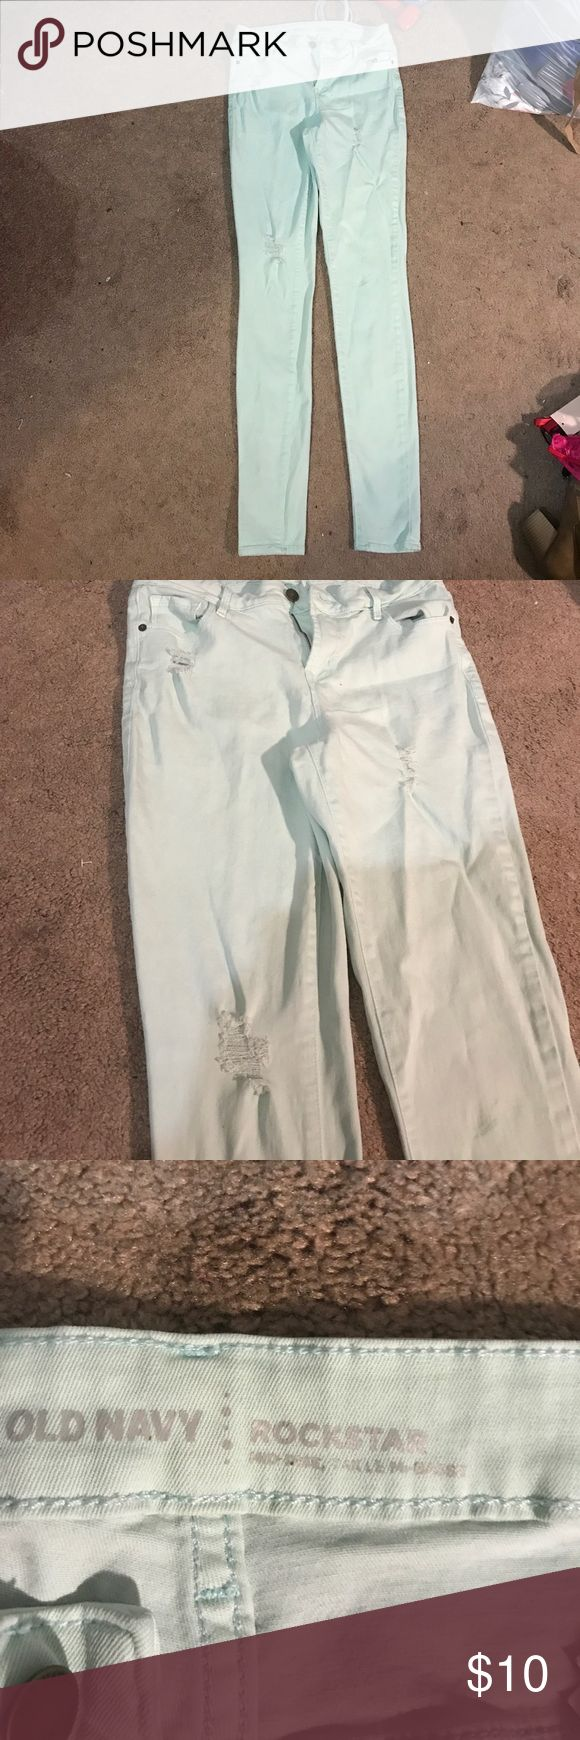 Old navy mint green skinny jeans. Midrise. 6 tall Worn a couple times loved them but I just couldn't handle the midrise. One stein on knee but kind if blends in. Smoke free house Old Navy Jeans Skinny